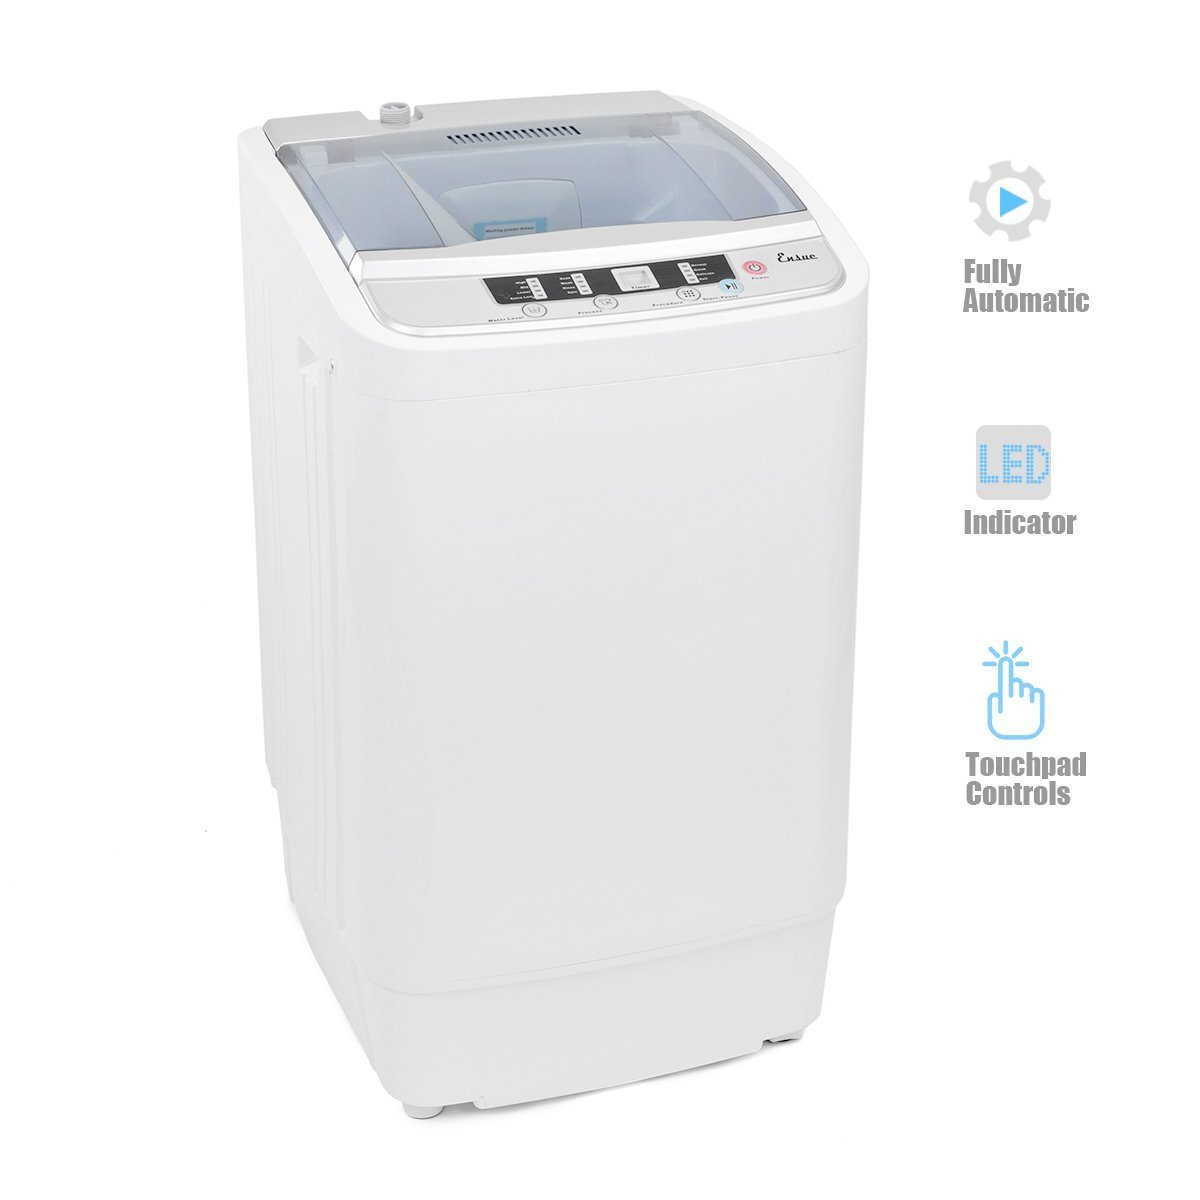 Ensue 7.7lbs Capacity Fully Automatic Portable Mini Washer, Spin Dryer